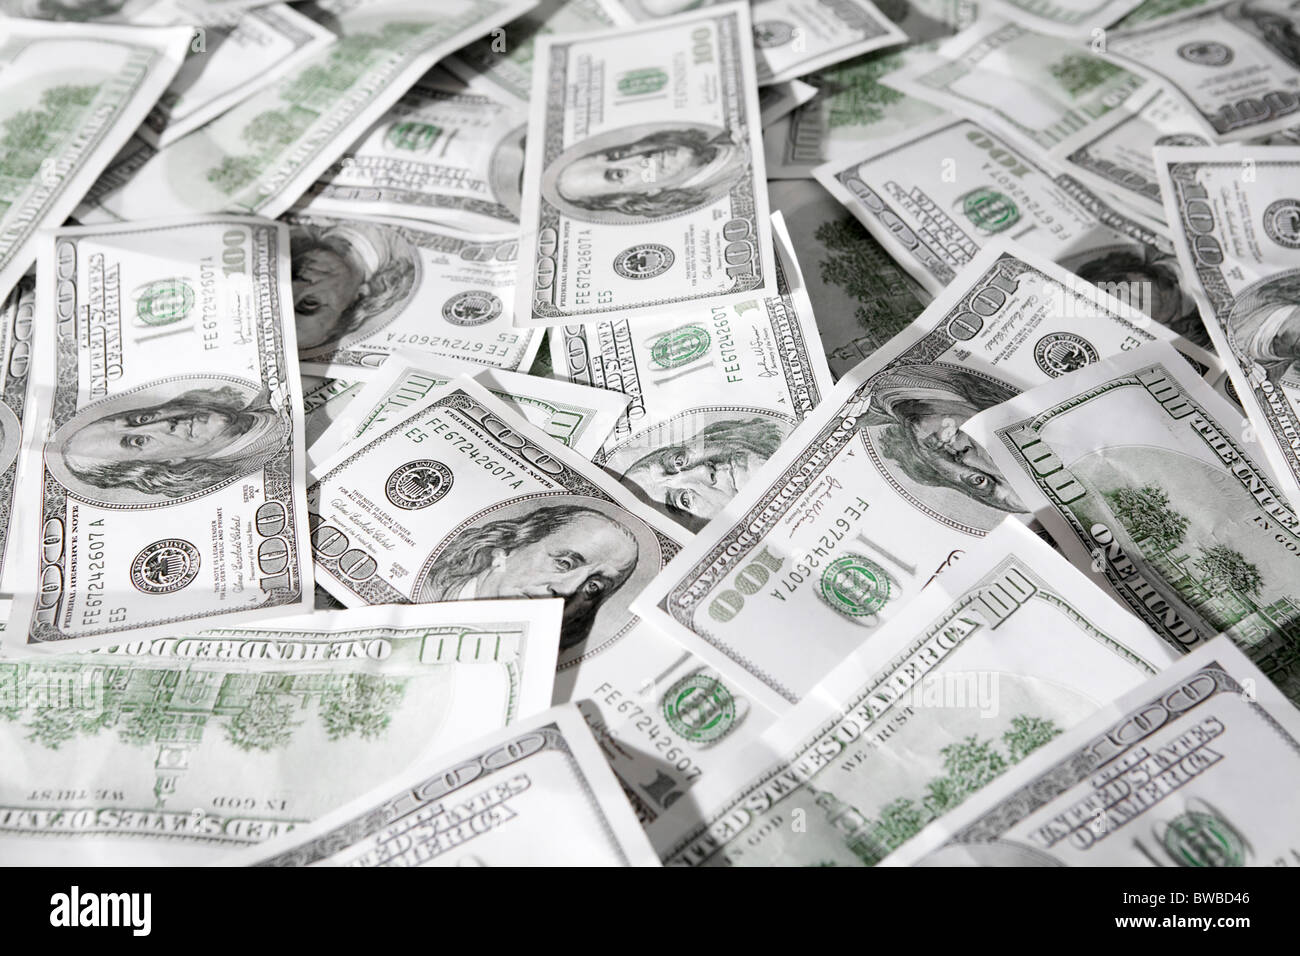 Close-up of a lot of American dollars - Stock Image